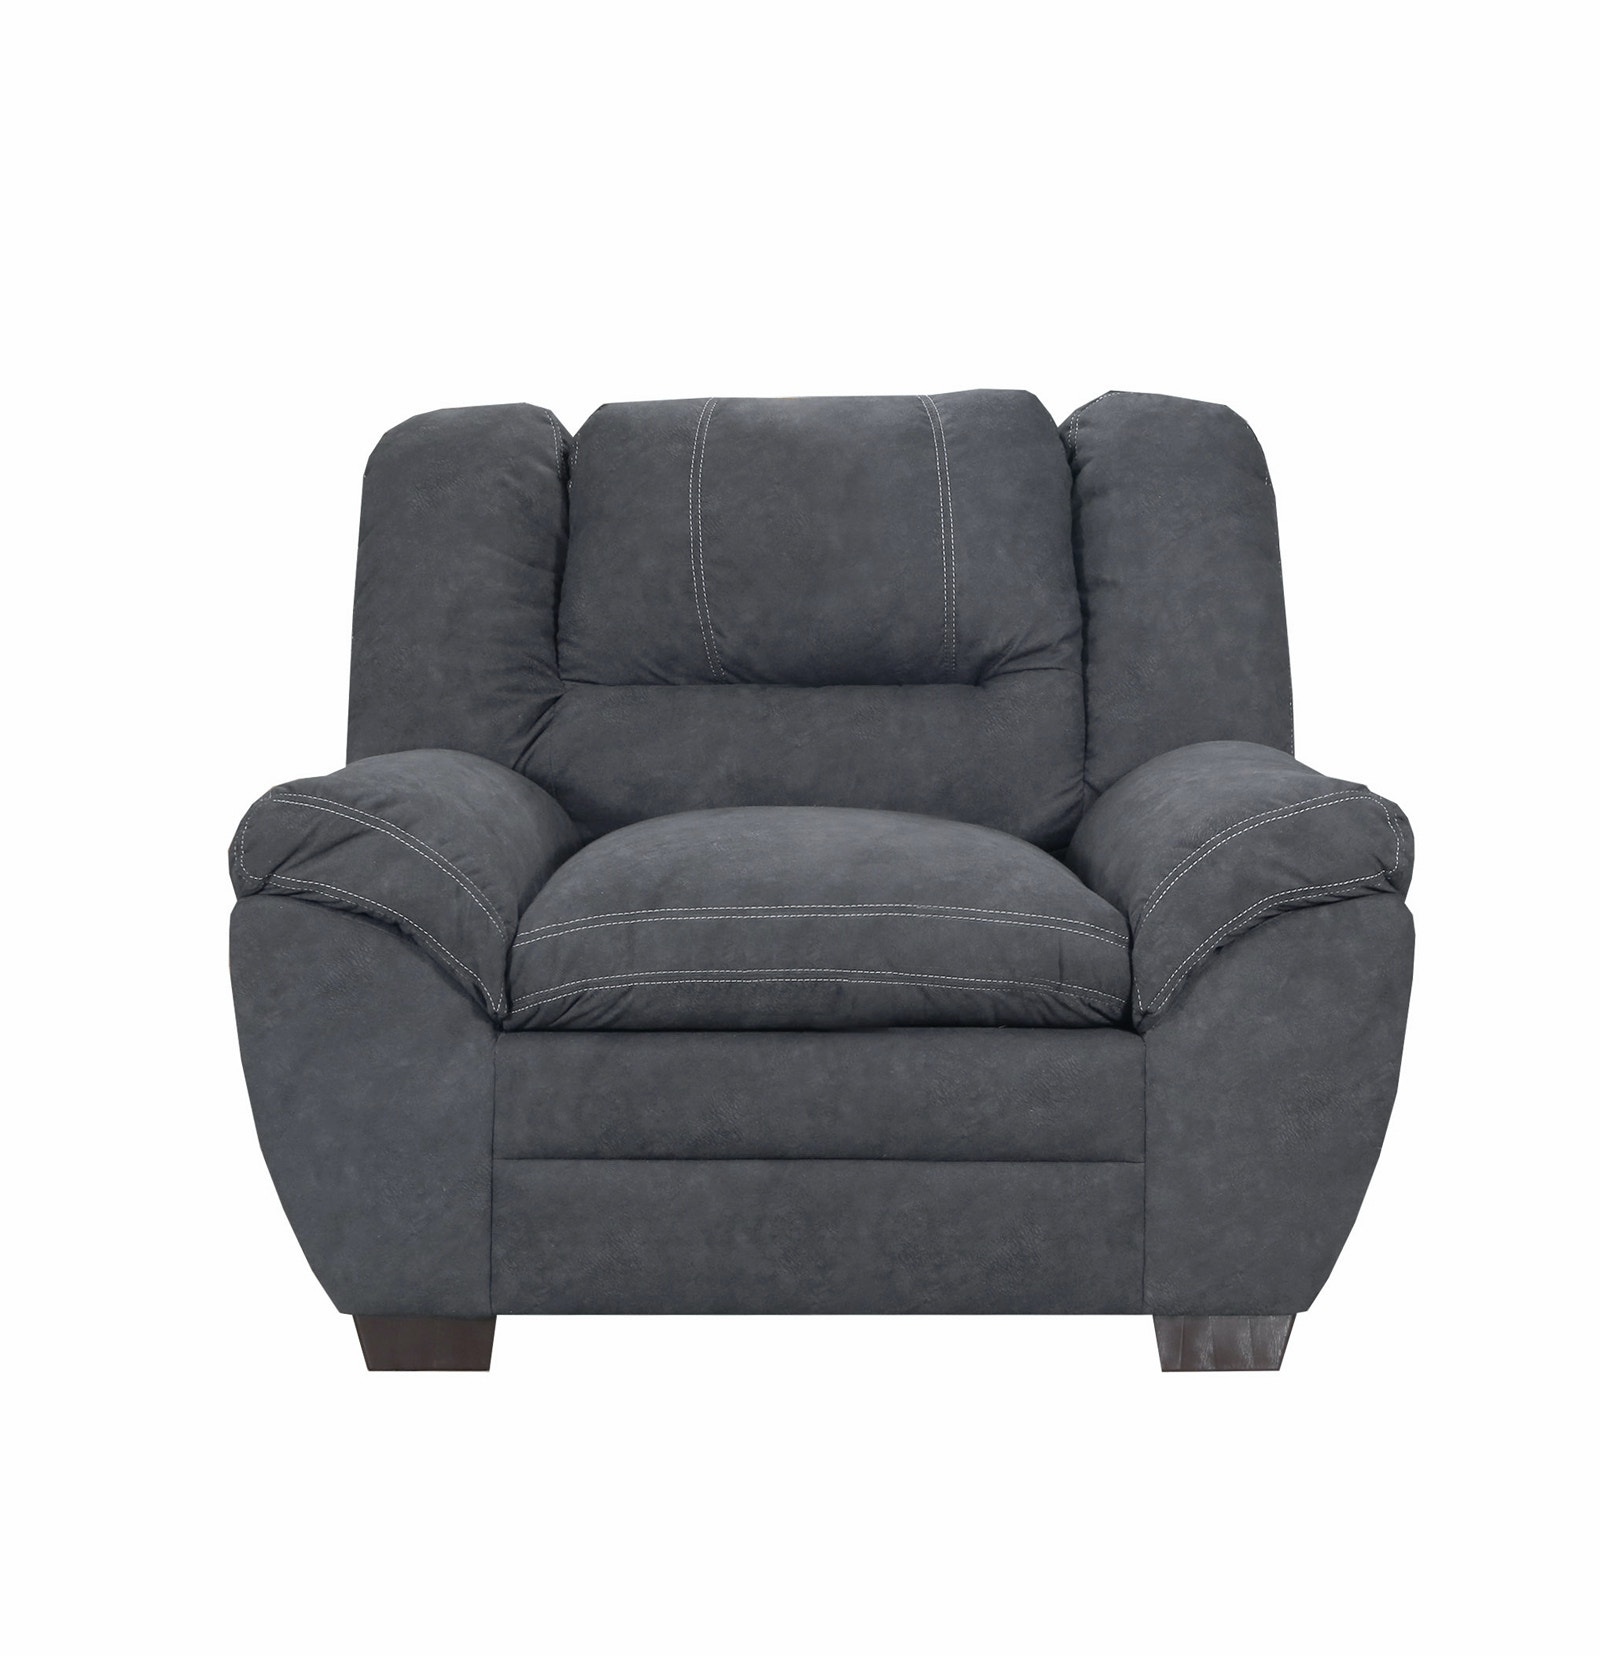 Simmons Upholstery Palermo Charcoal Chair 056834